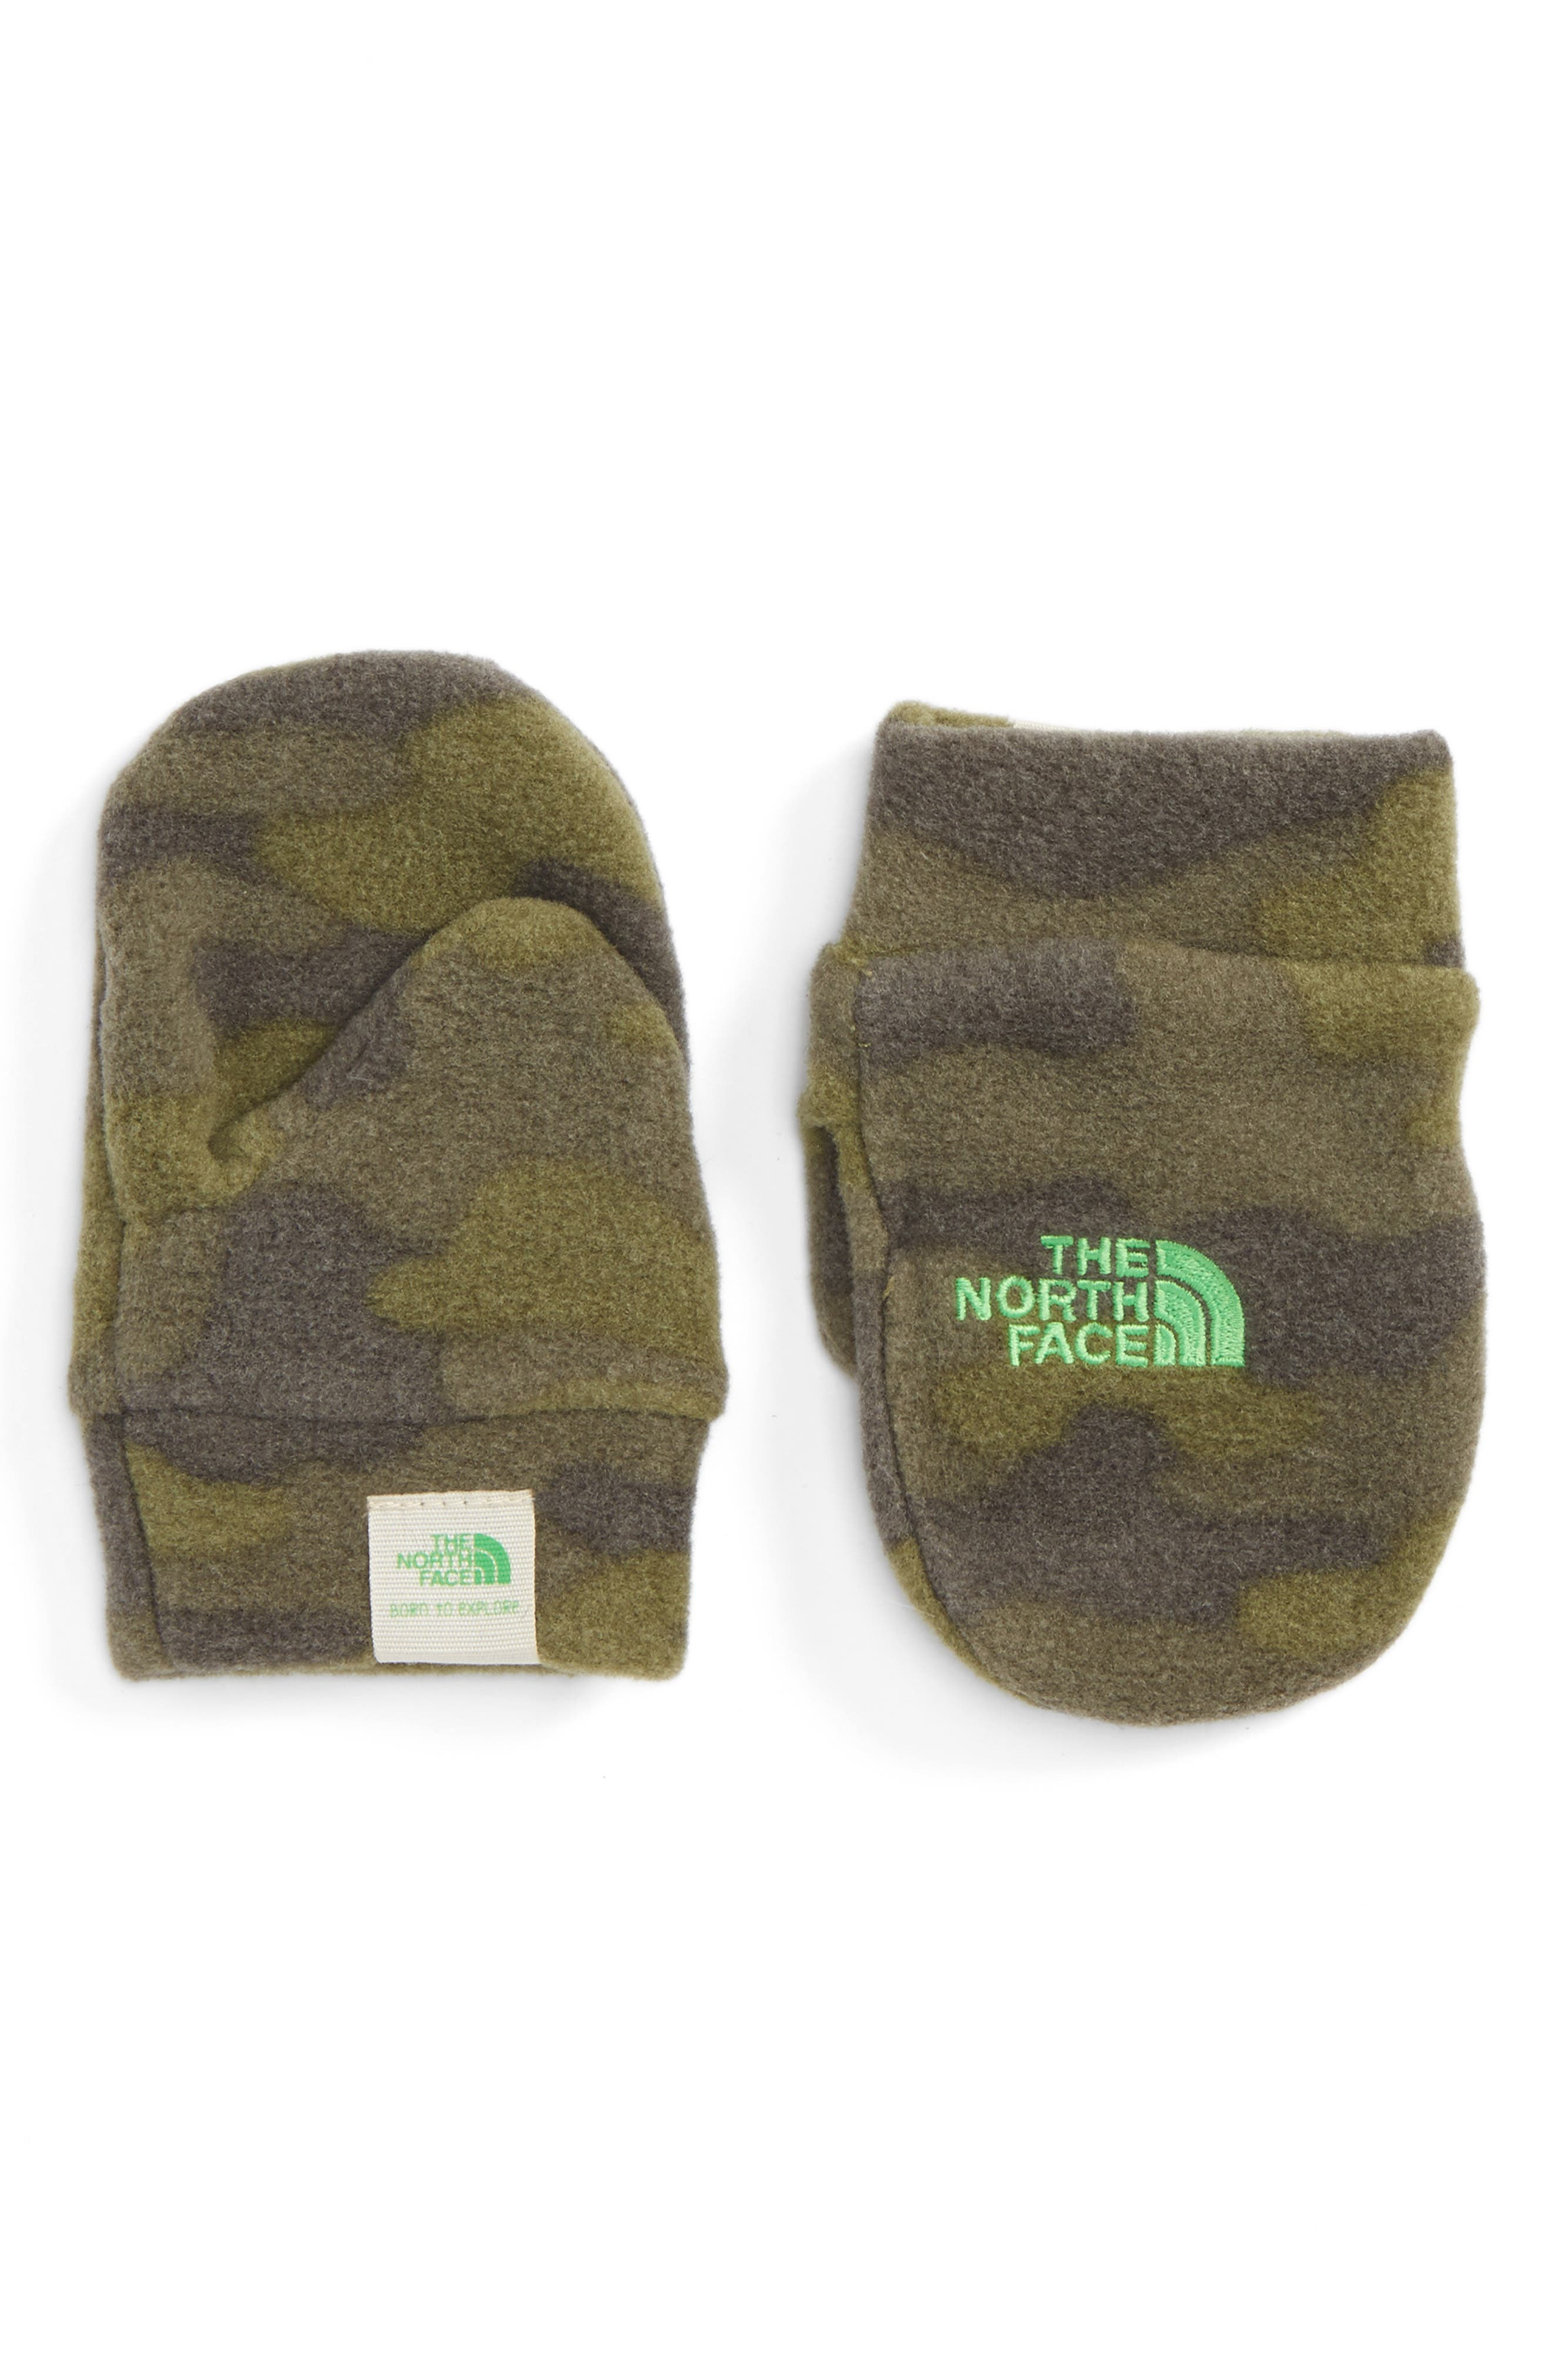 'Nugget' Fleece Mittens,                             Main thumbnail 1, color,                             Burnt Olive Green Camo